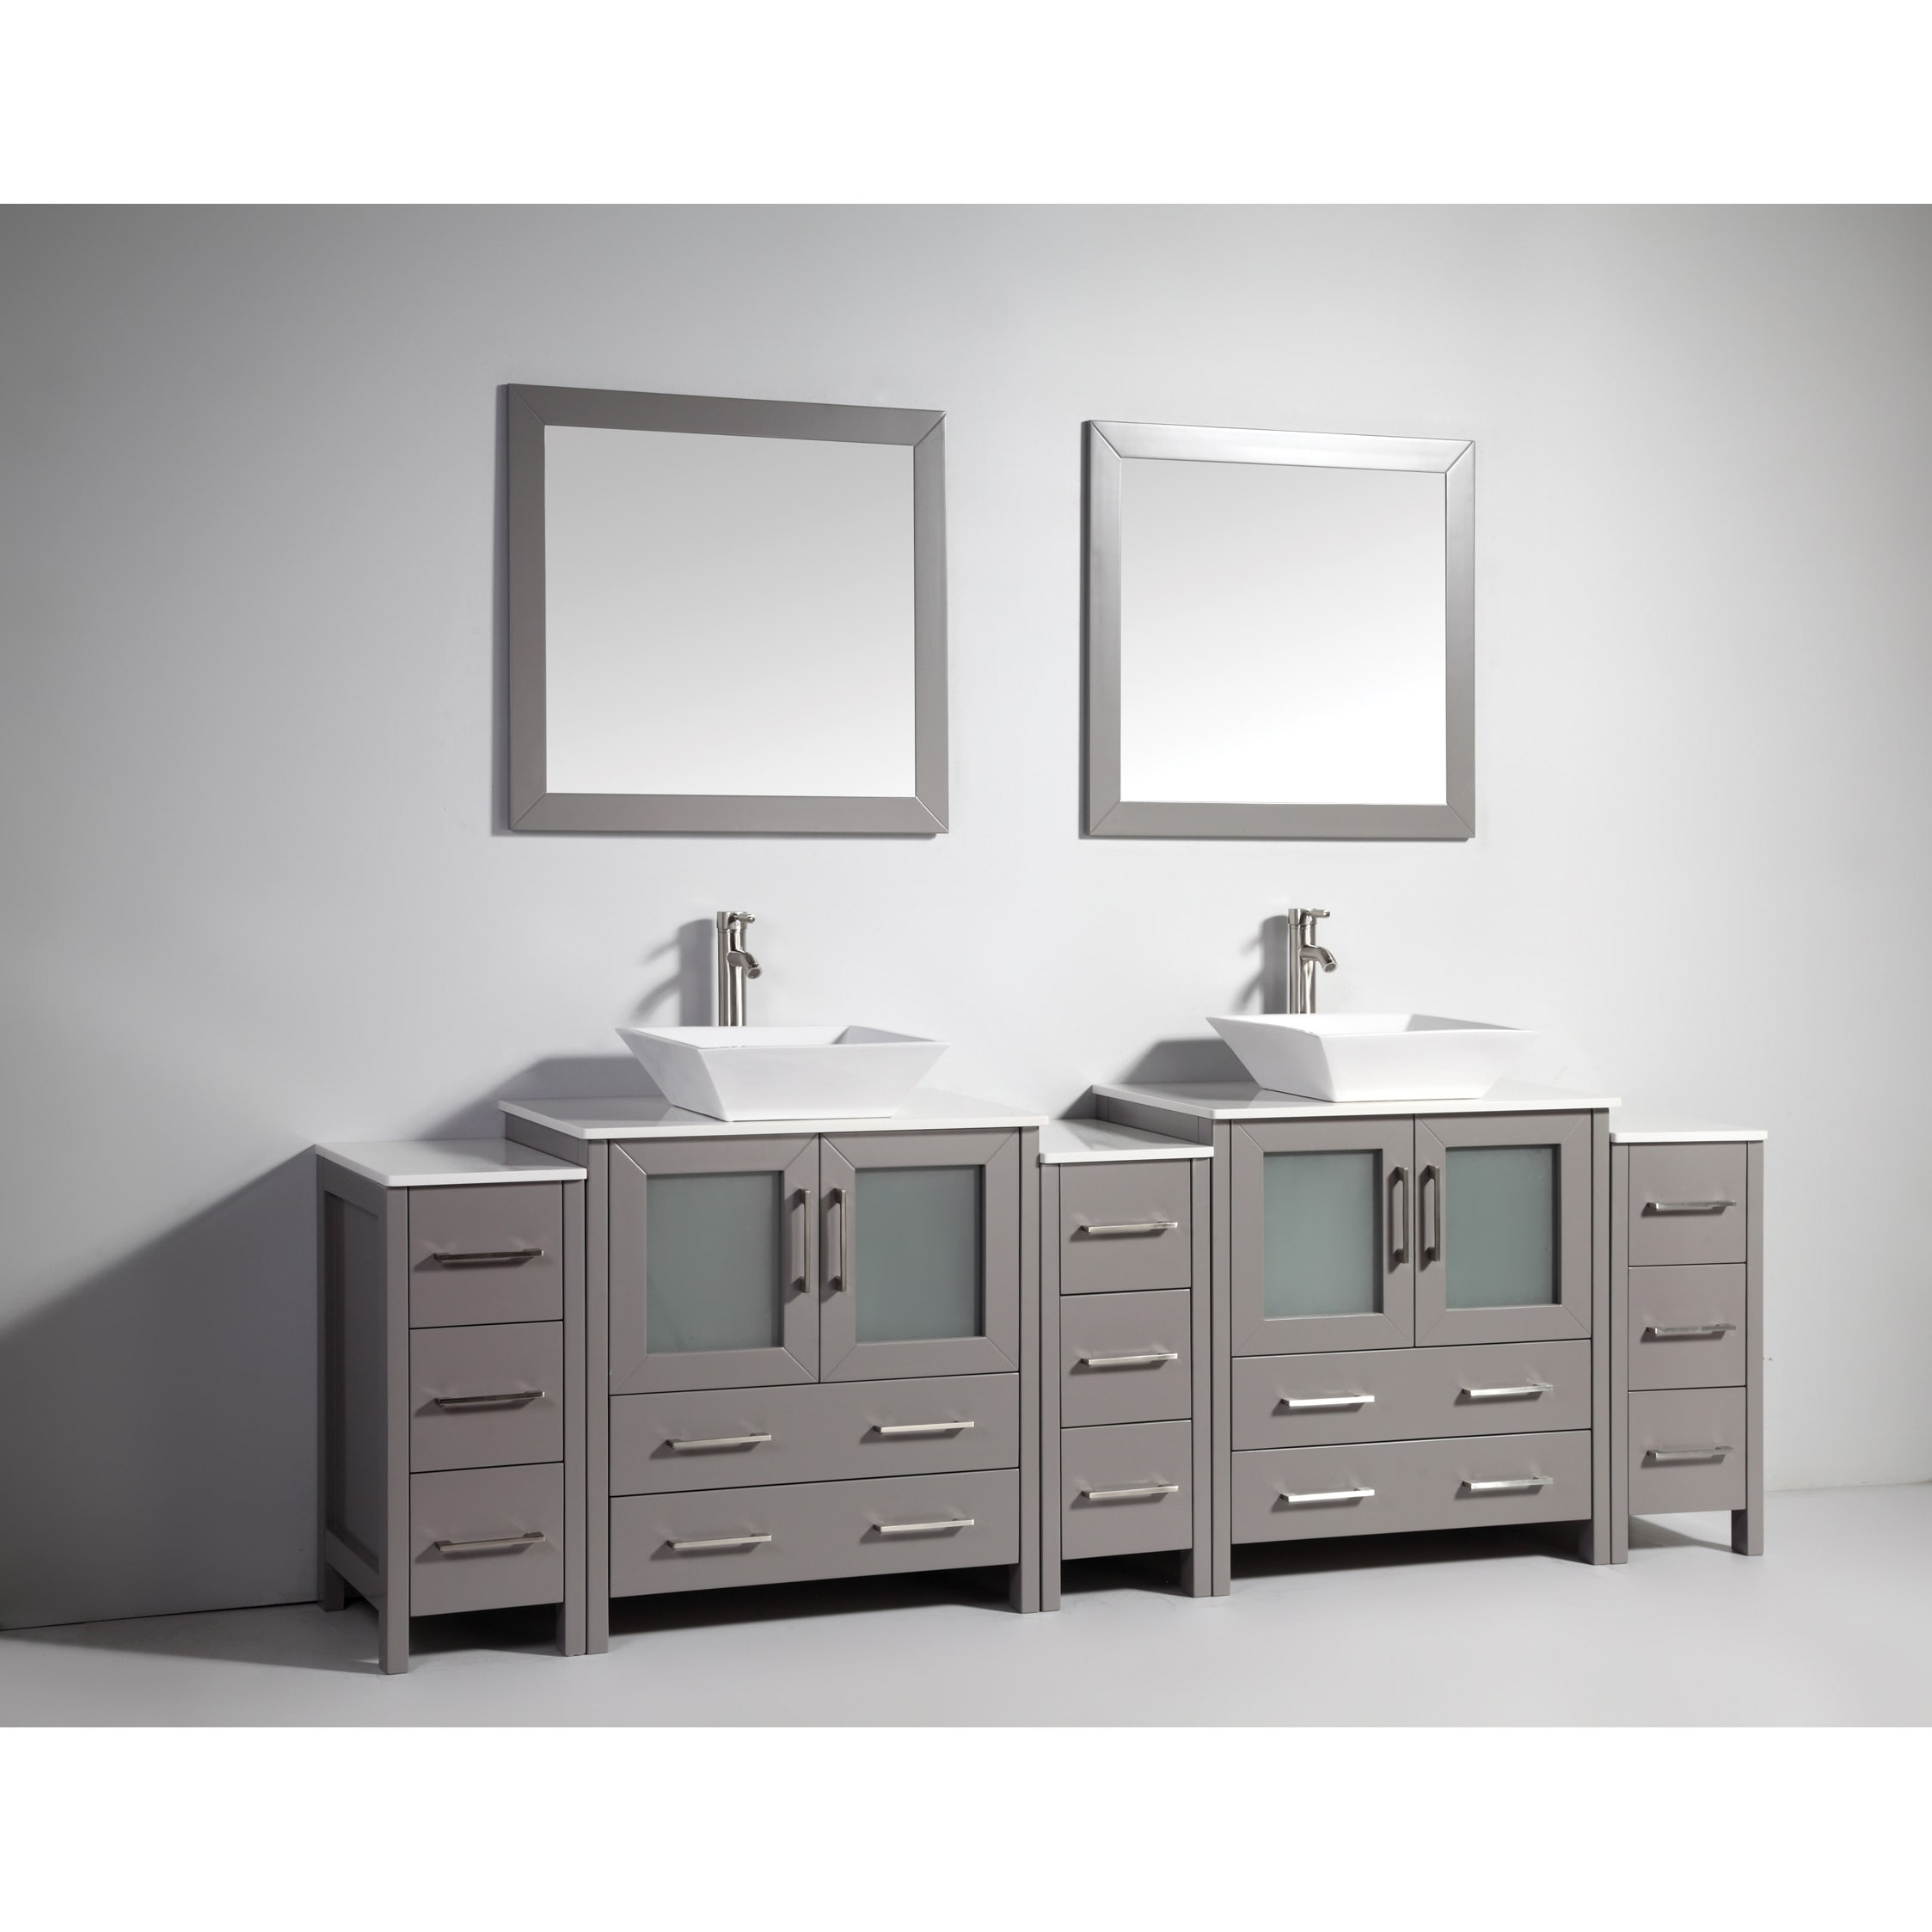 Shop vanity art 96 inch double sink bathroom vanity set with ceramic top free shipping today overstock com 13681622